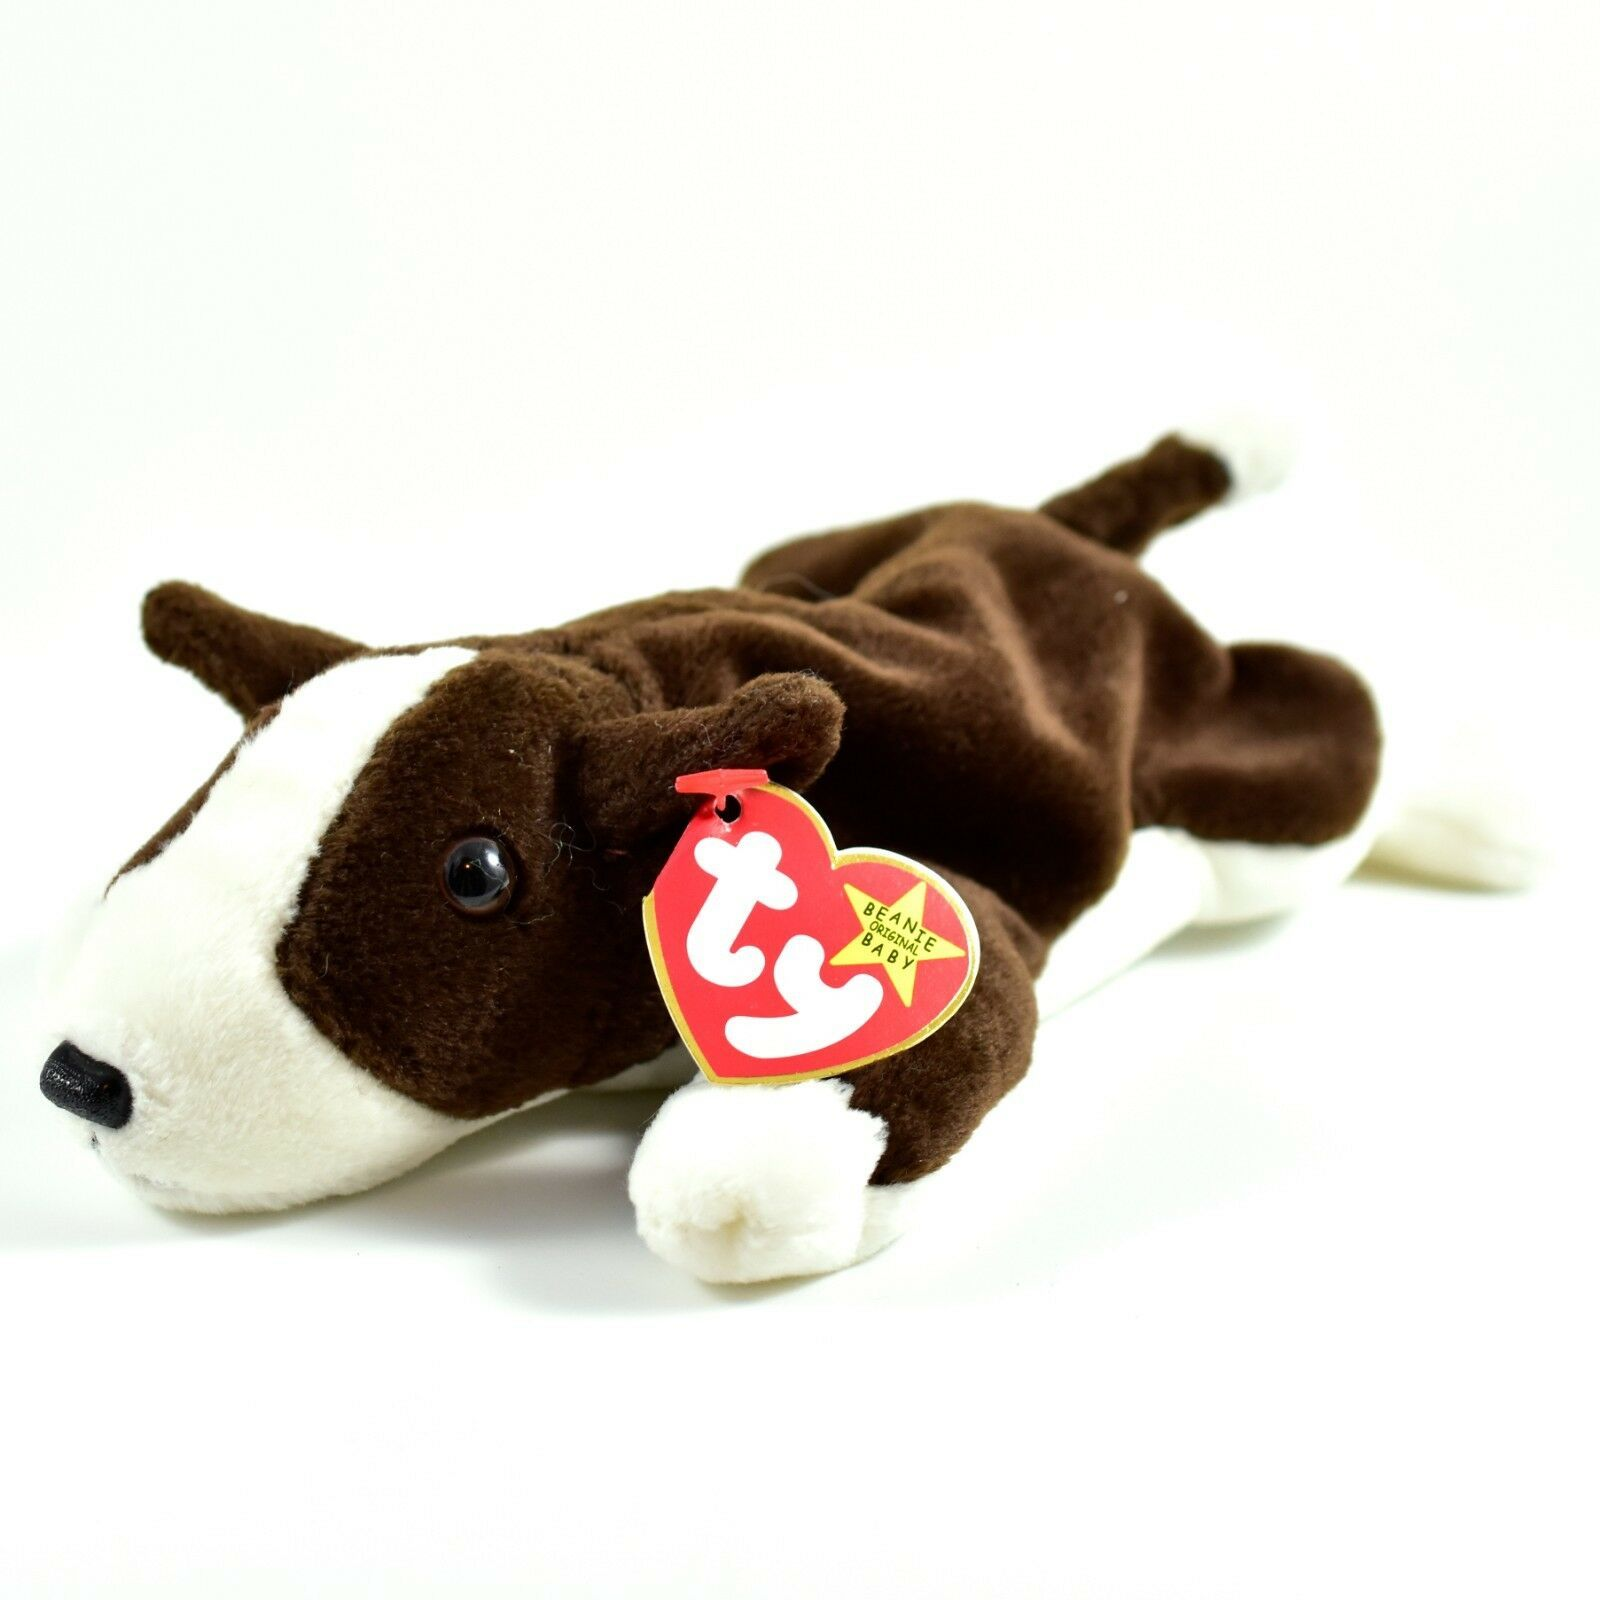 1997 TY Beanie Baby Original Bruno Brown White Dog Beanbag Plush Toy Doll